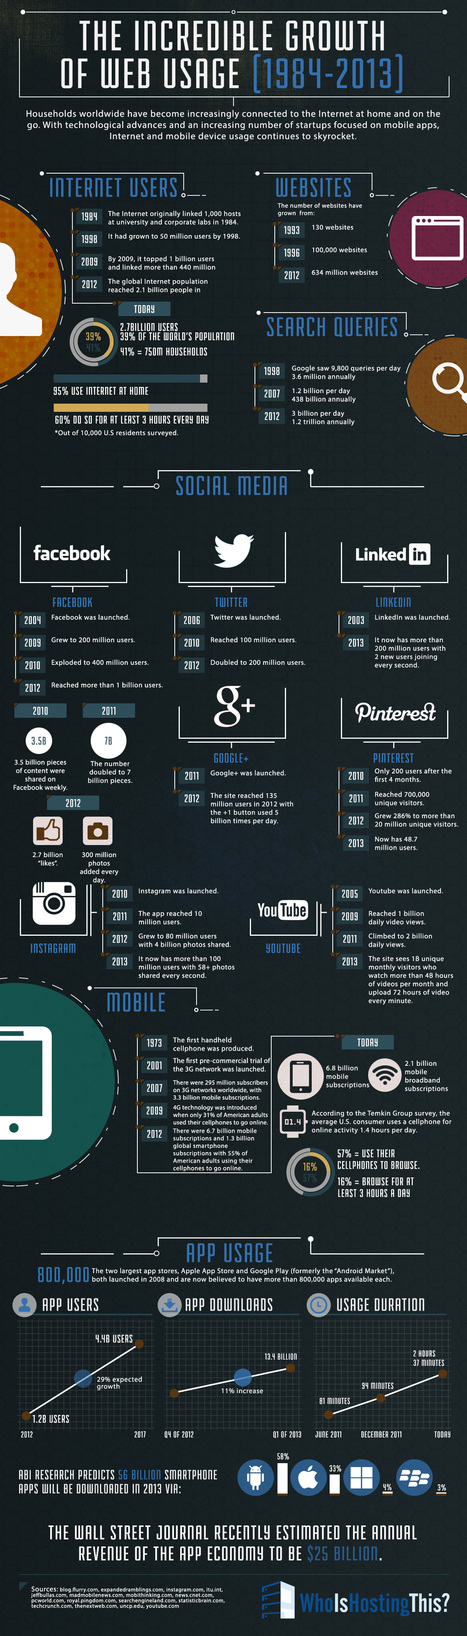 Infographic: The Incredible Growth of Web Usage [1984-2013] | SaaS | Scoop.it